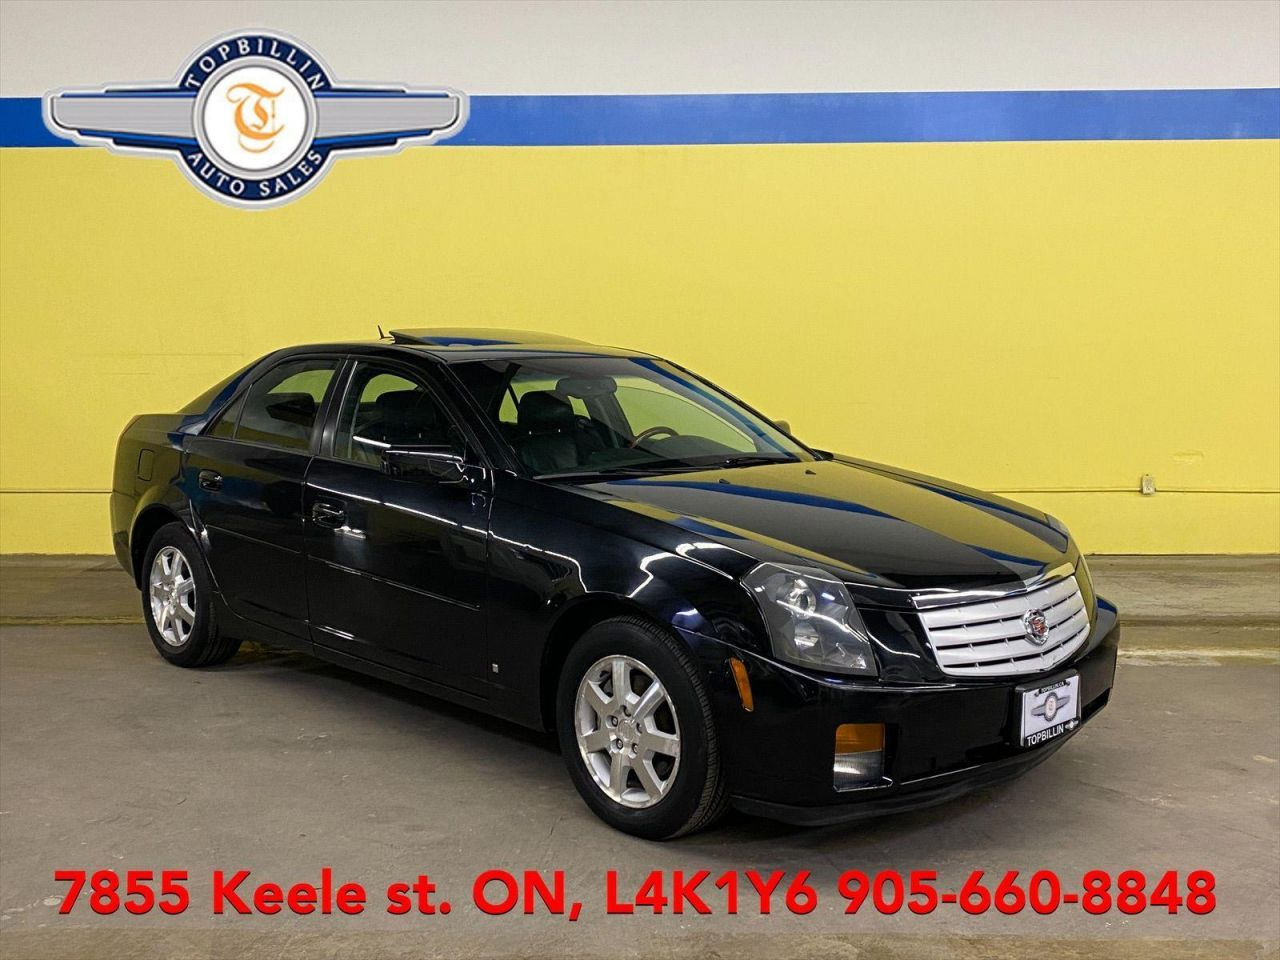 2006 Cadillac CTS Only 123K, 2 Years Warranty